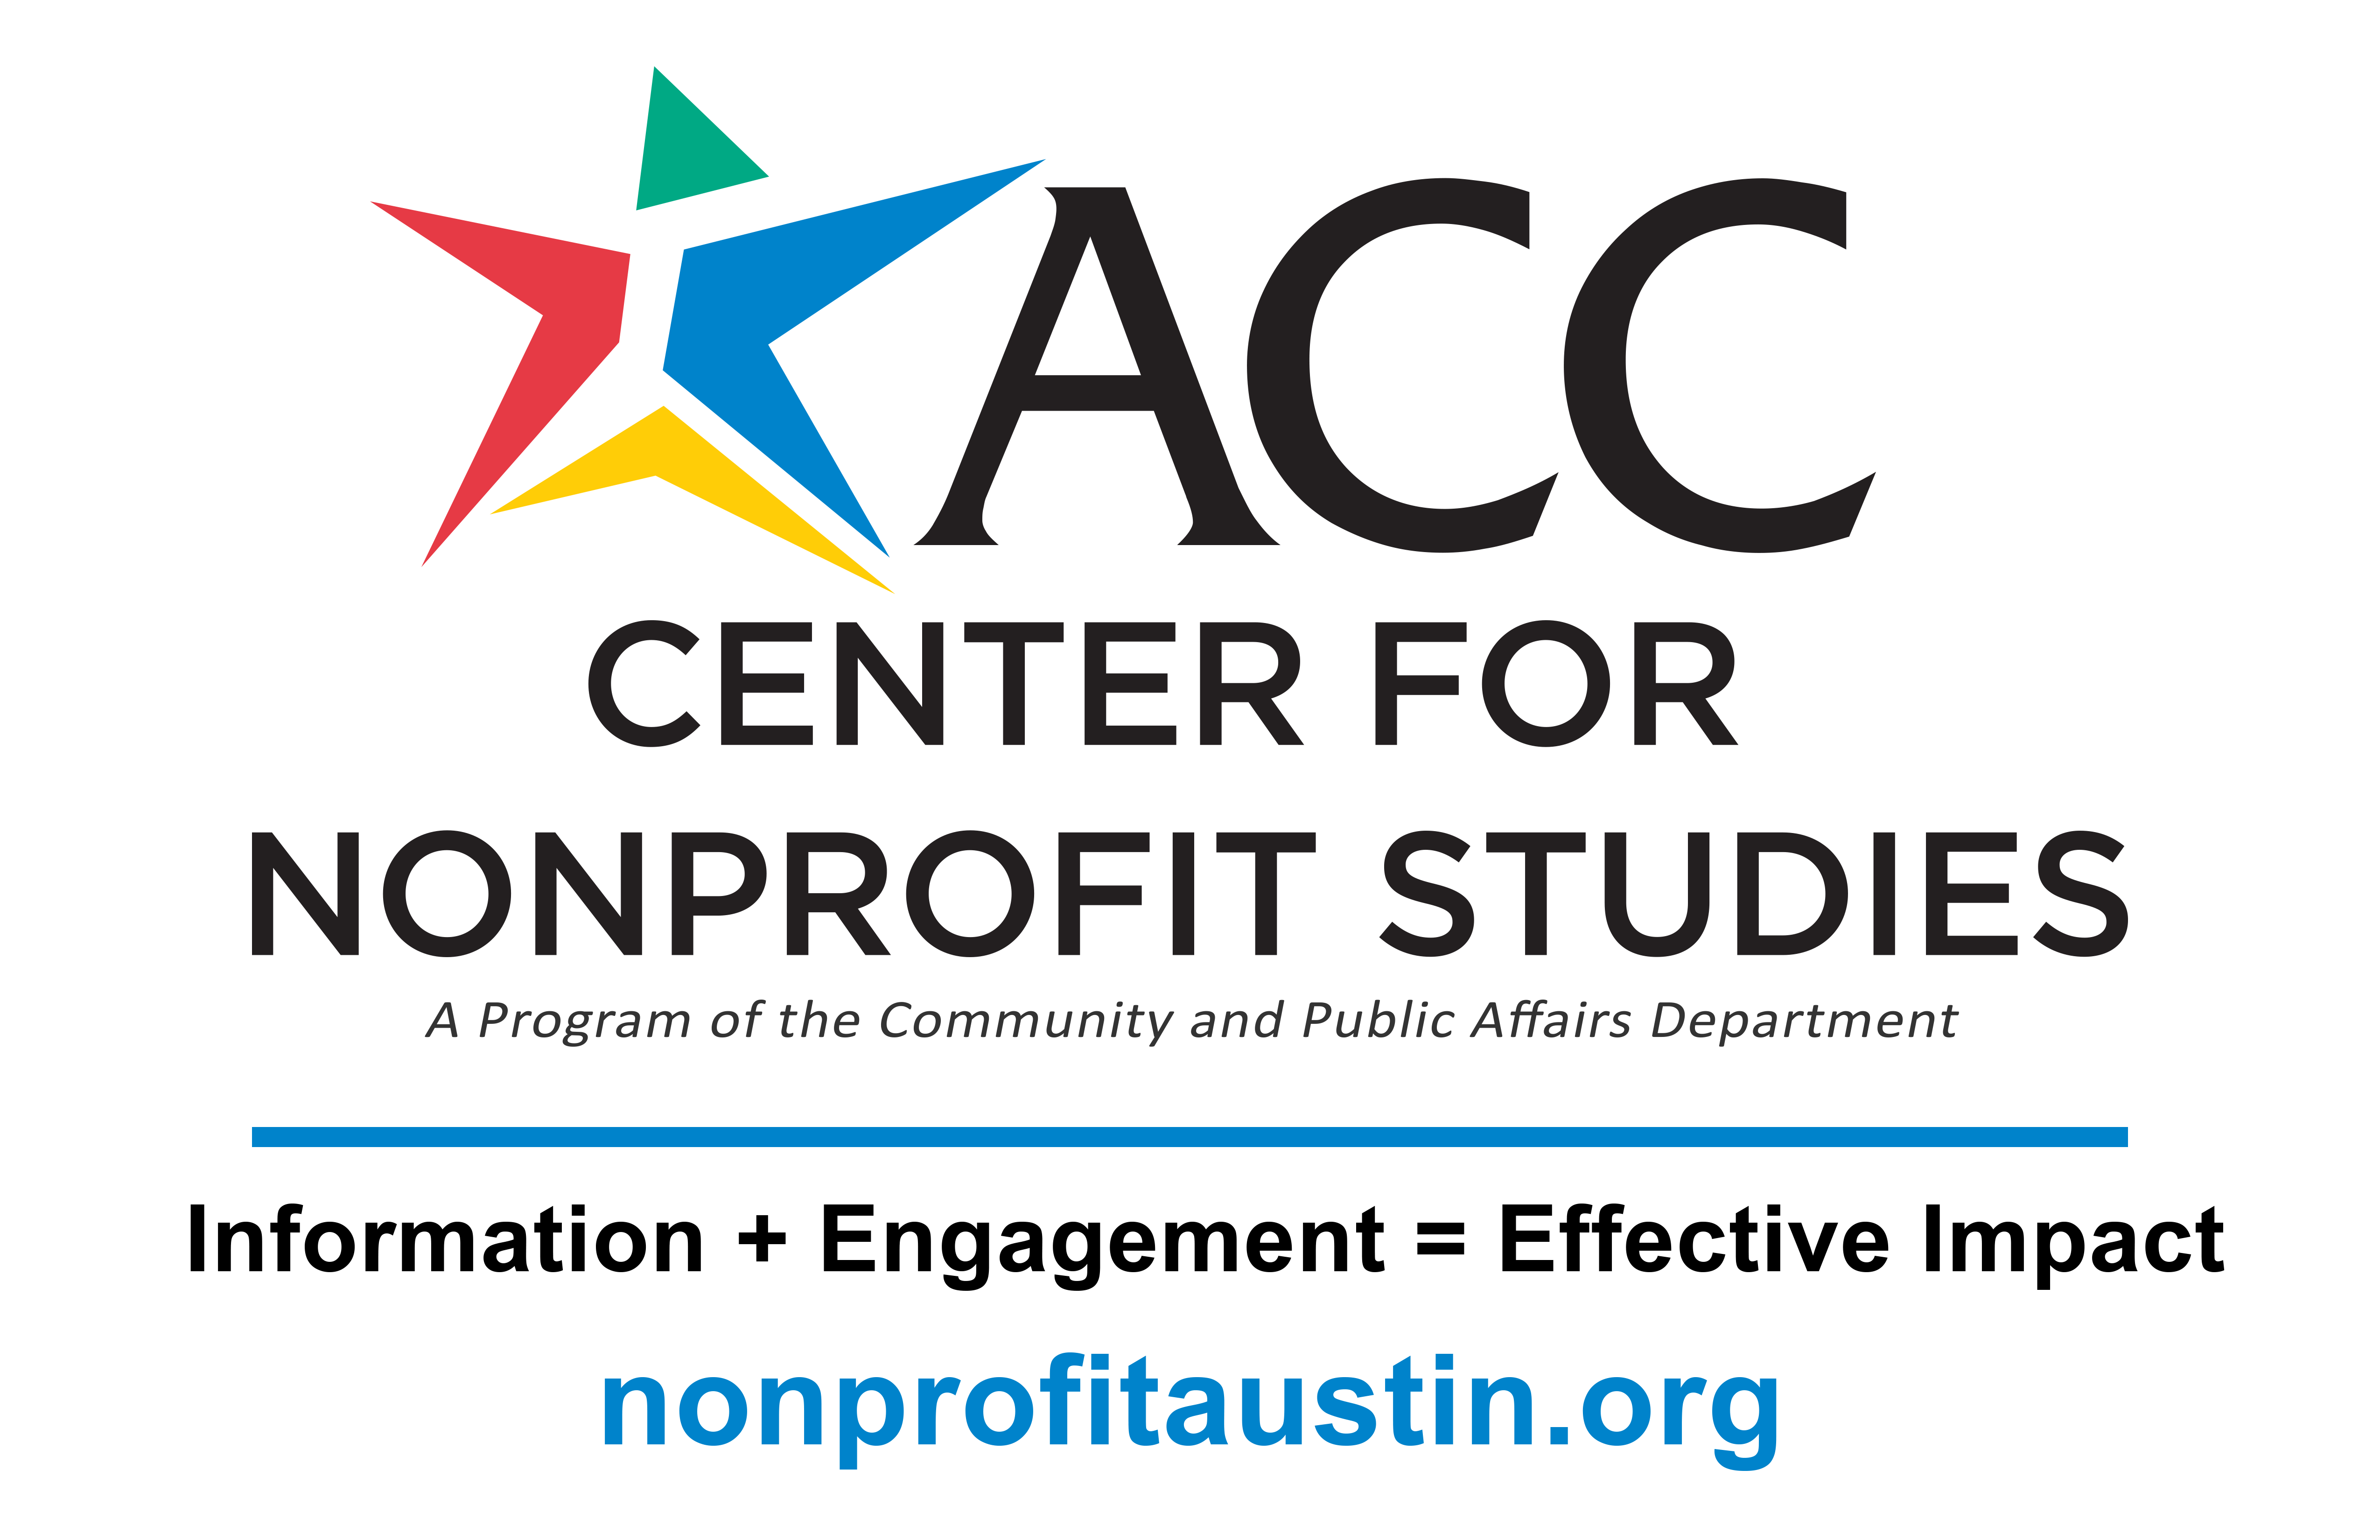 Certificate in volunteer management tickets wed nov 14 2018 at 9 organizer center for nonprofit studies at austin community college 1betcityfo Gallery